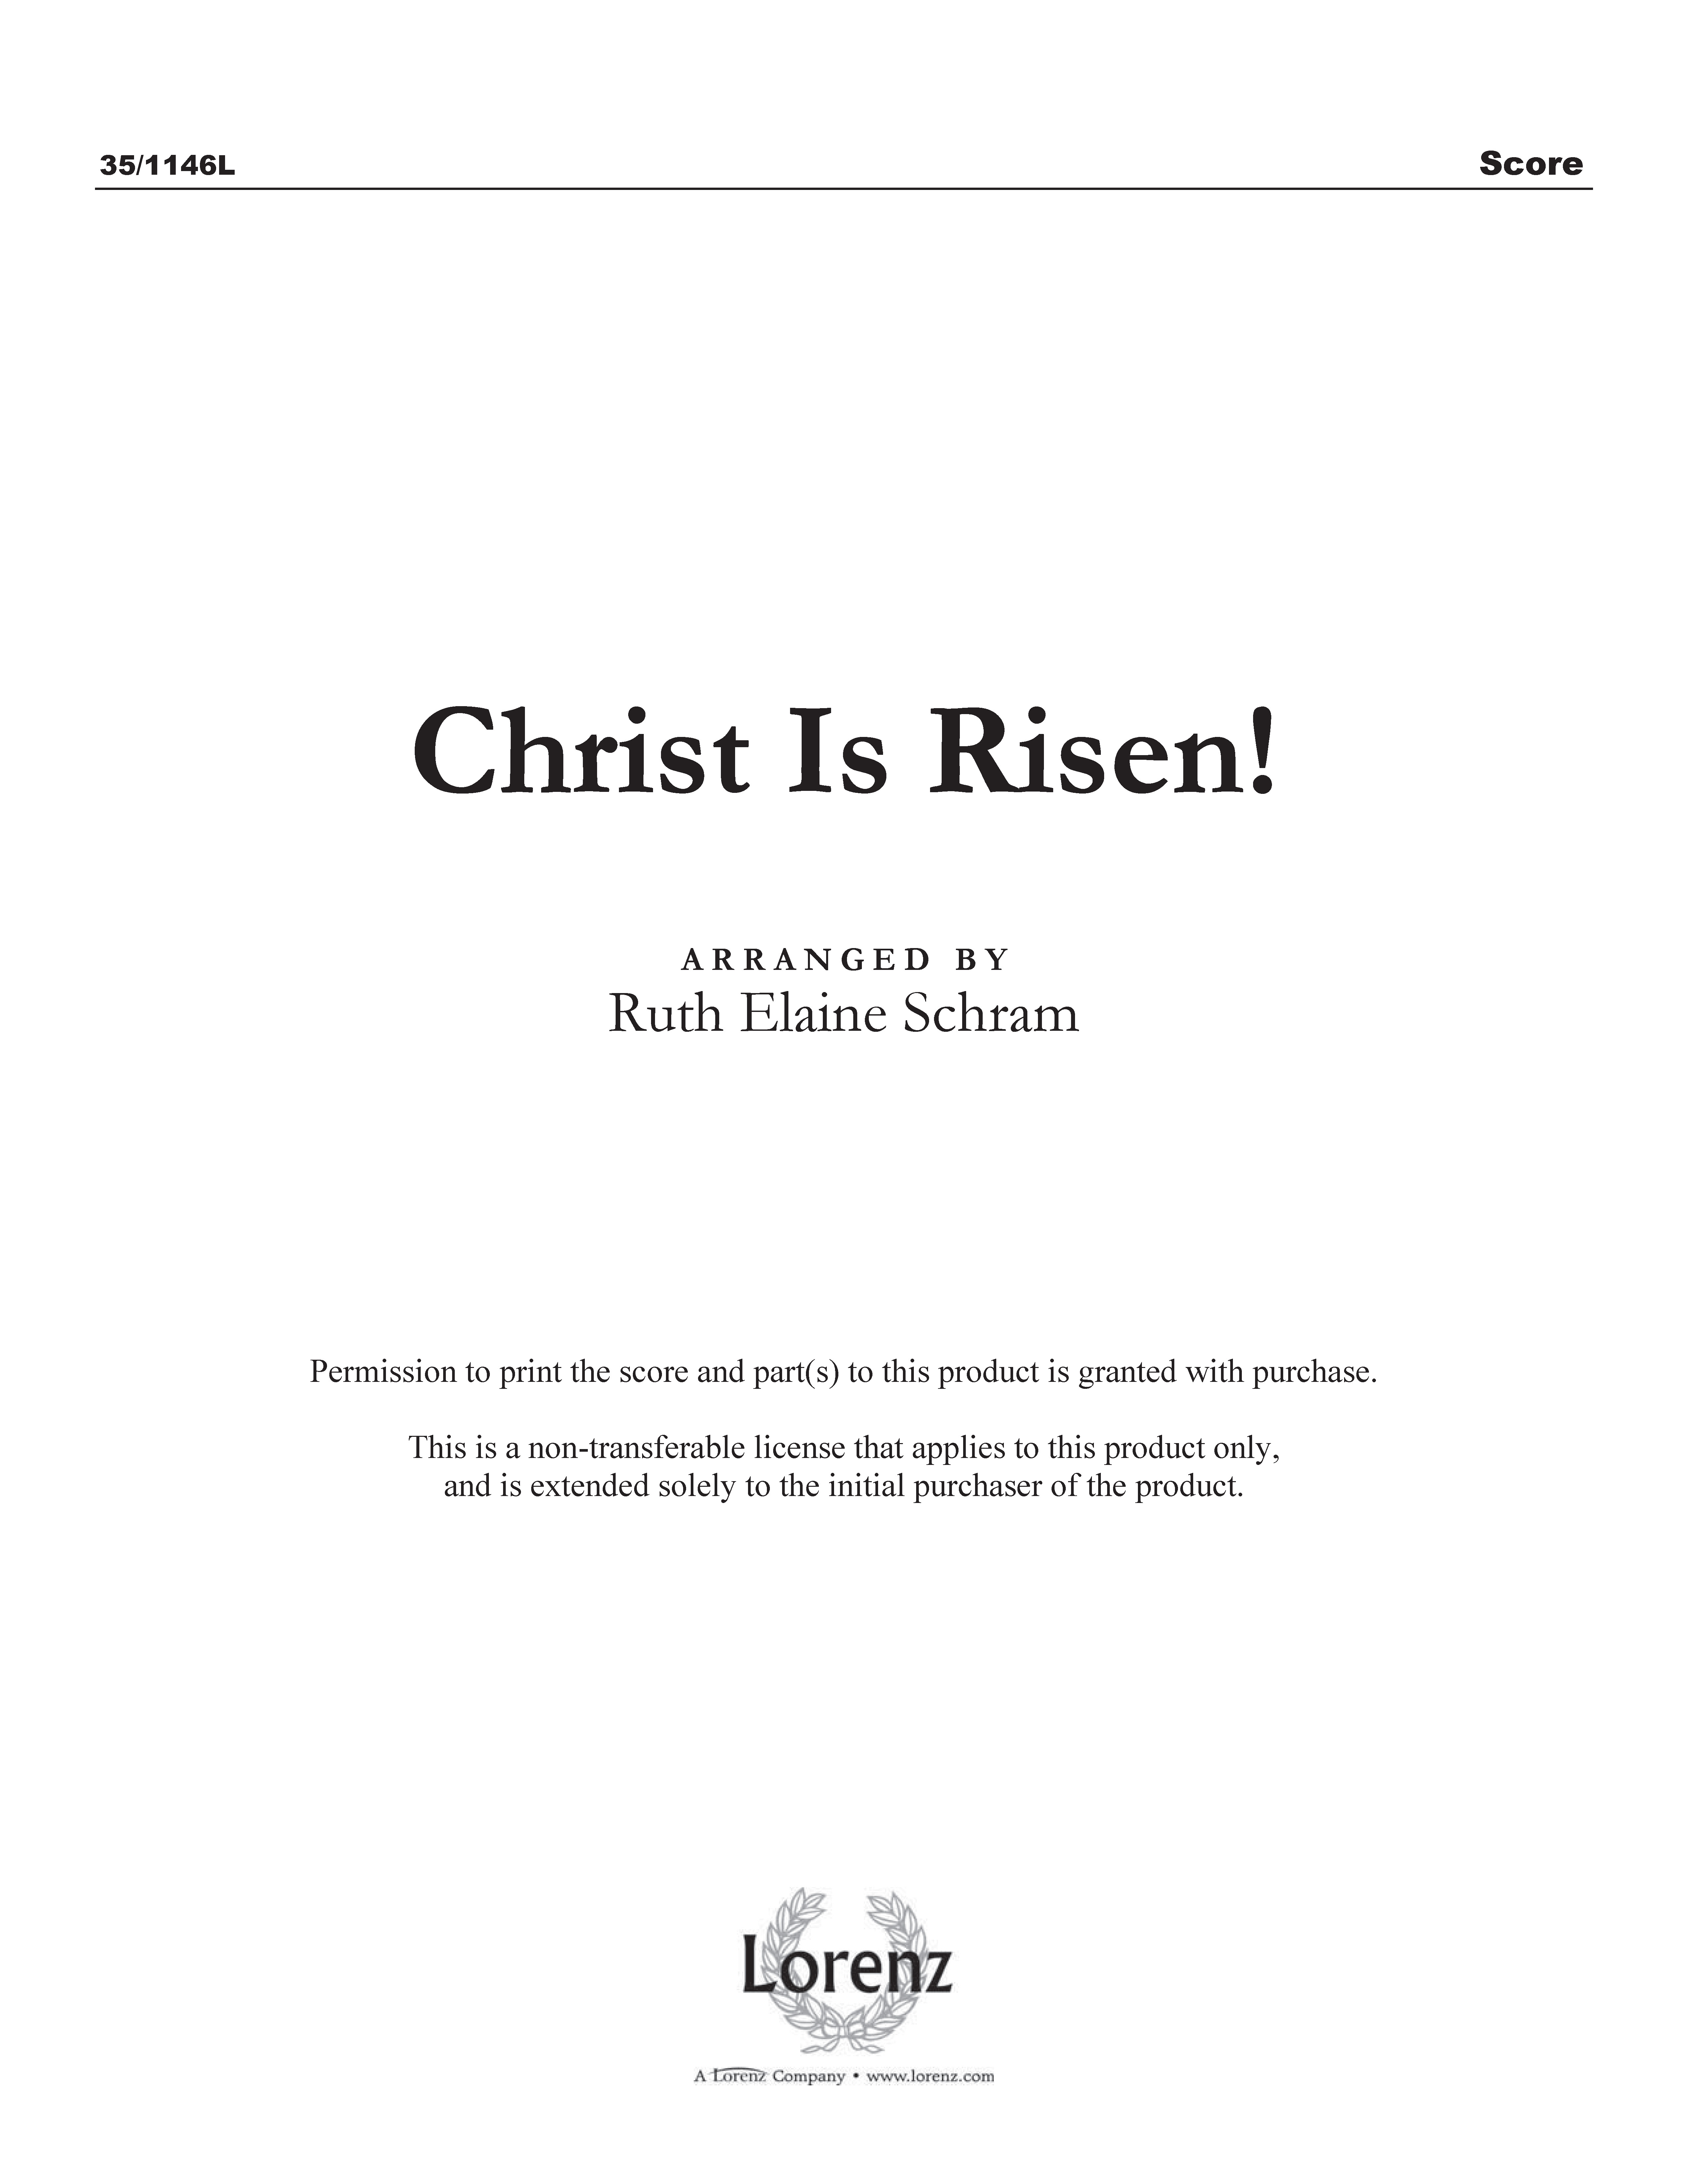 Christ Is Risen! (Digital Delivery)